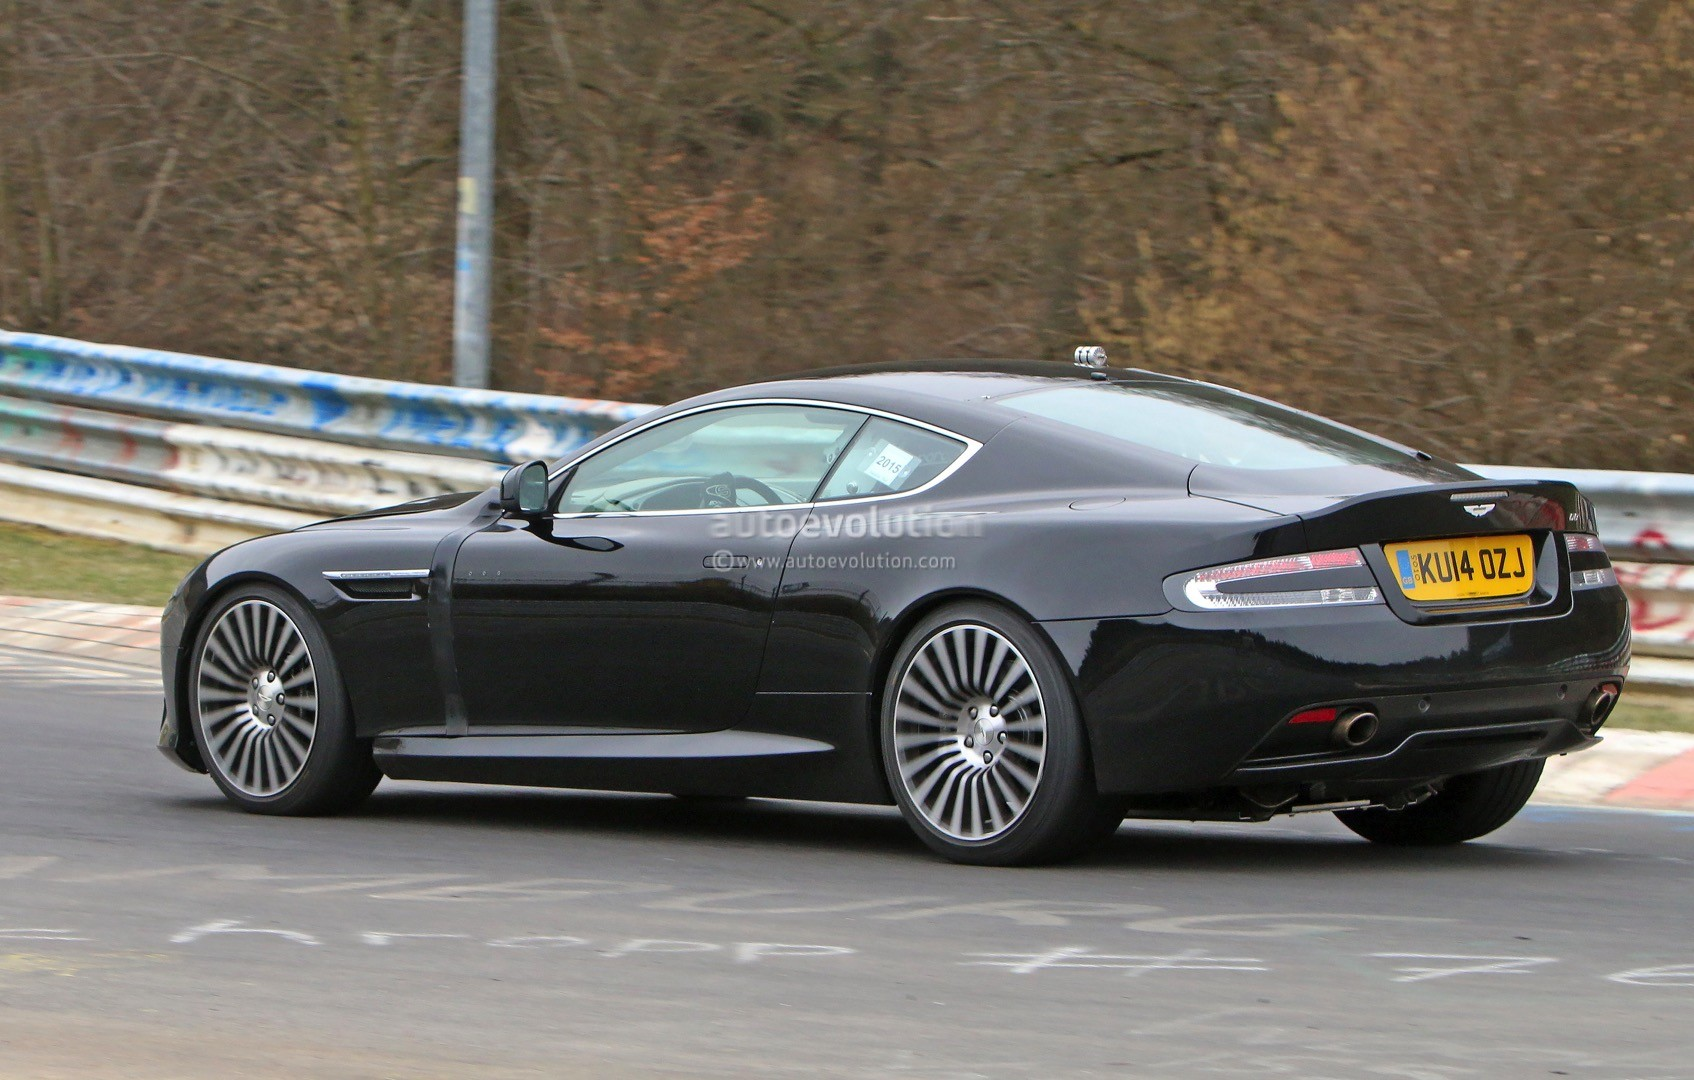 2016 aston martin db9 spied it s powered by an atmospheric v12 engine autoevolution. Black Bedroom Furniture Sets. Home Design Ideas